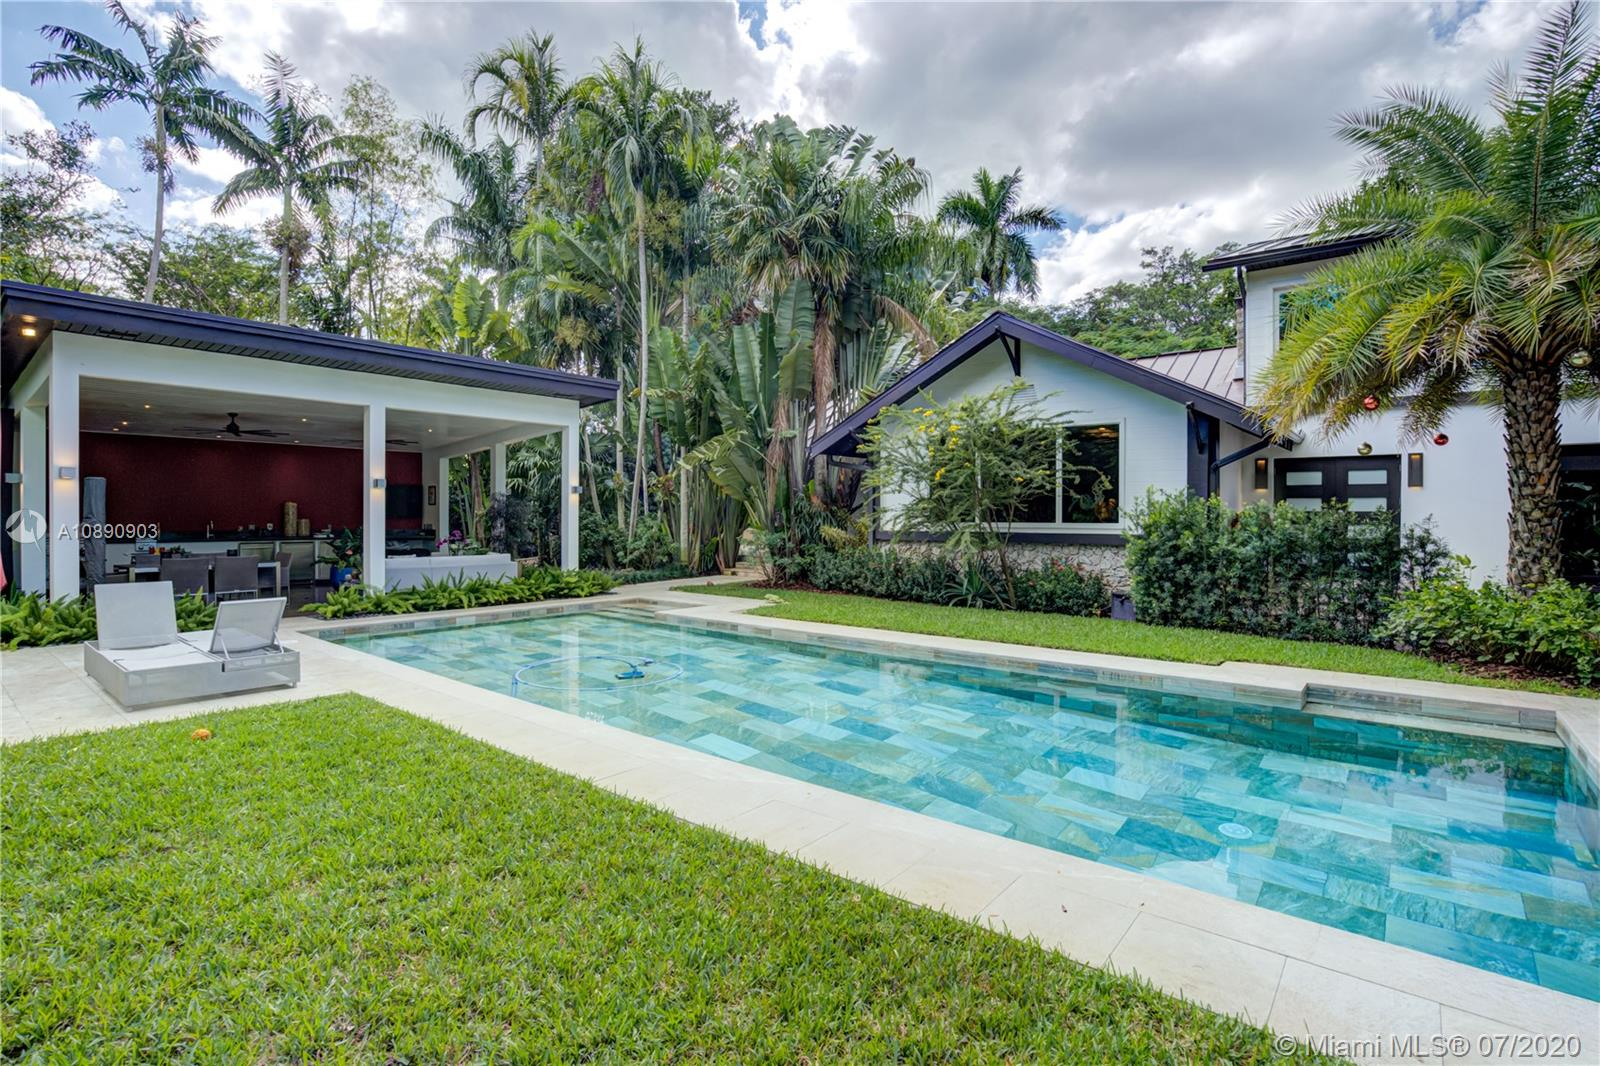 3700  Poinciana Ave  For Sale A10890903, FL